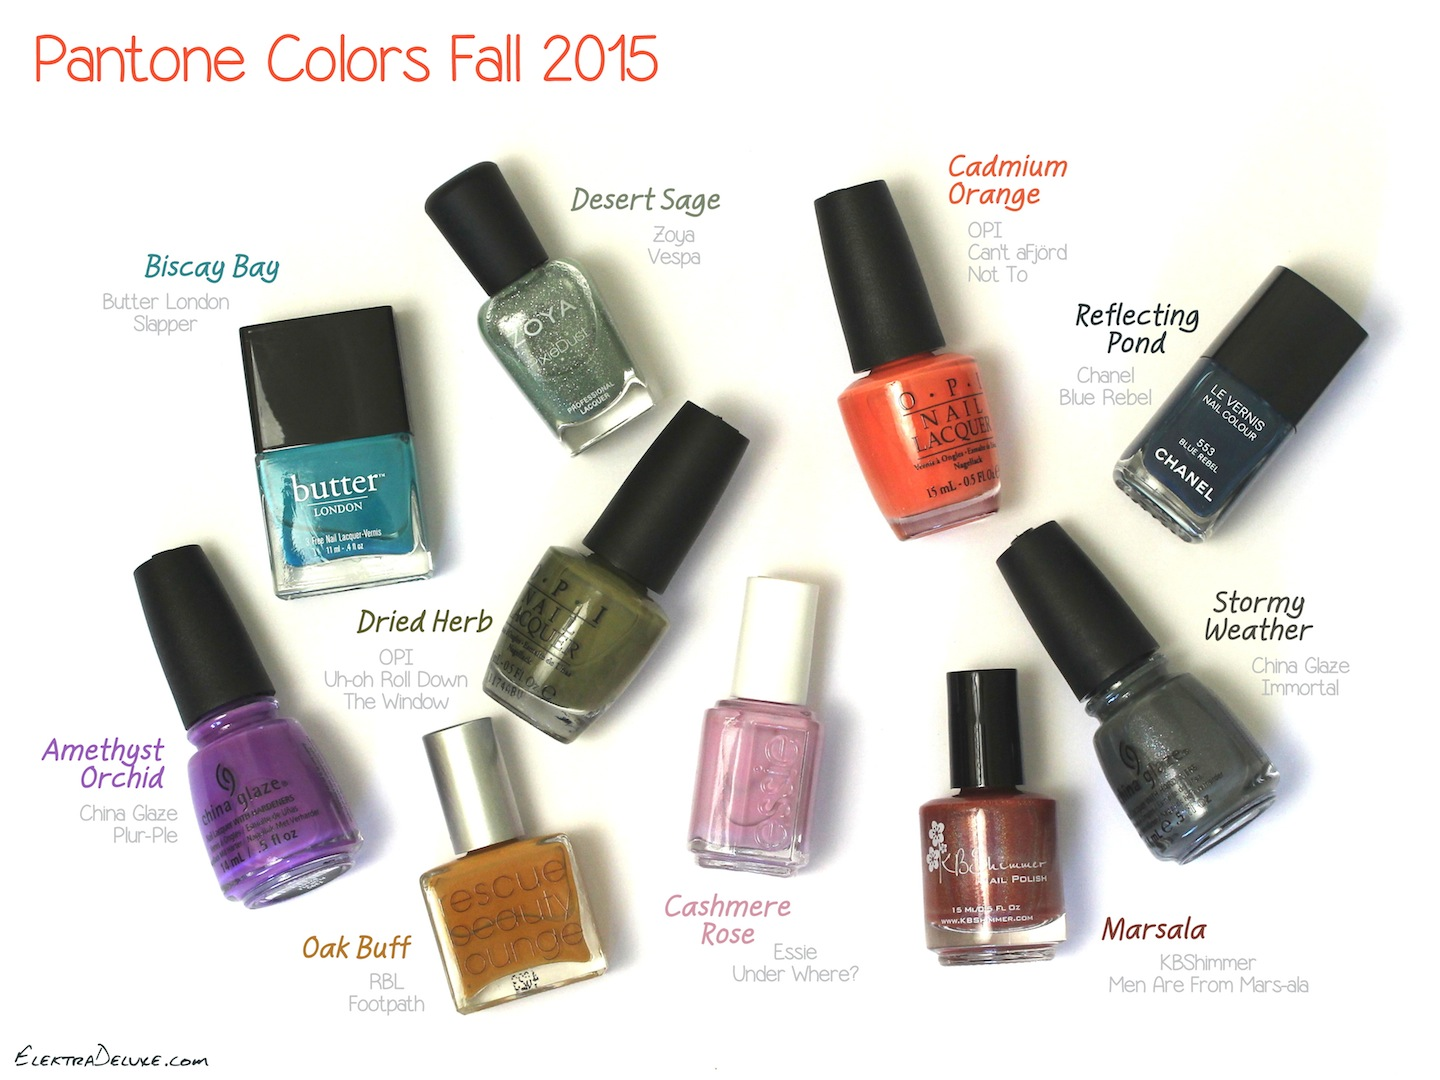 Pantone Colors Fall 2015